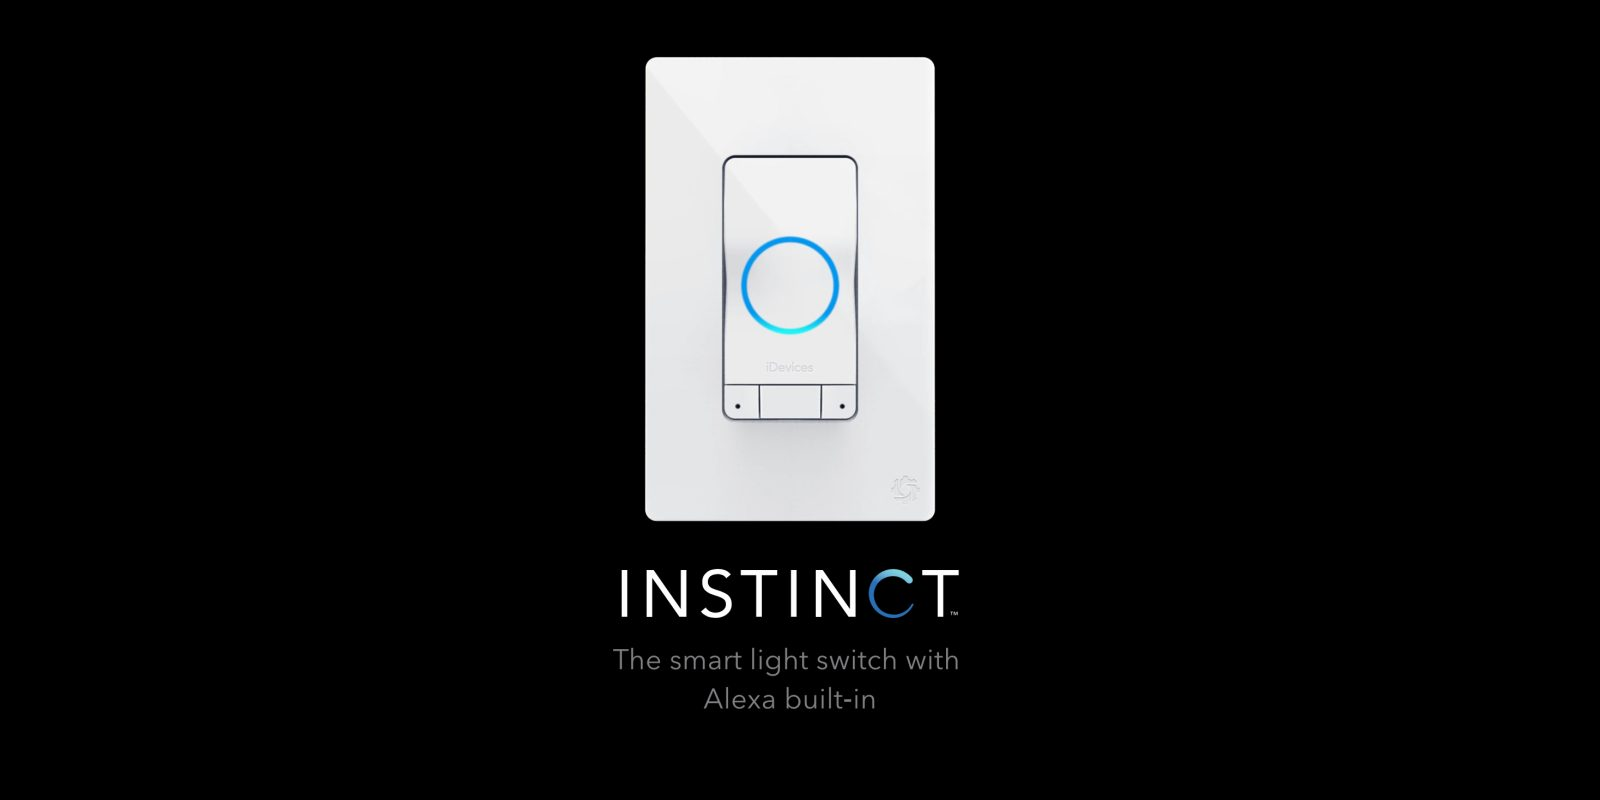 iDevices finally ships its Instinct smart wall switch with built-in Alexa